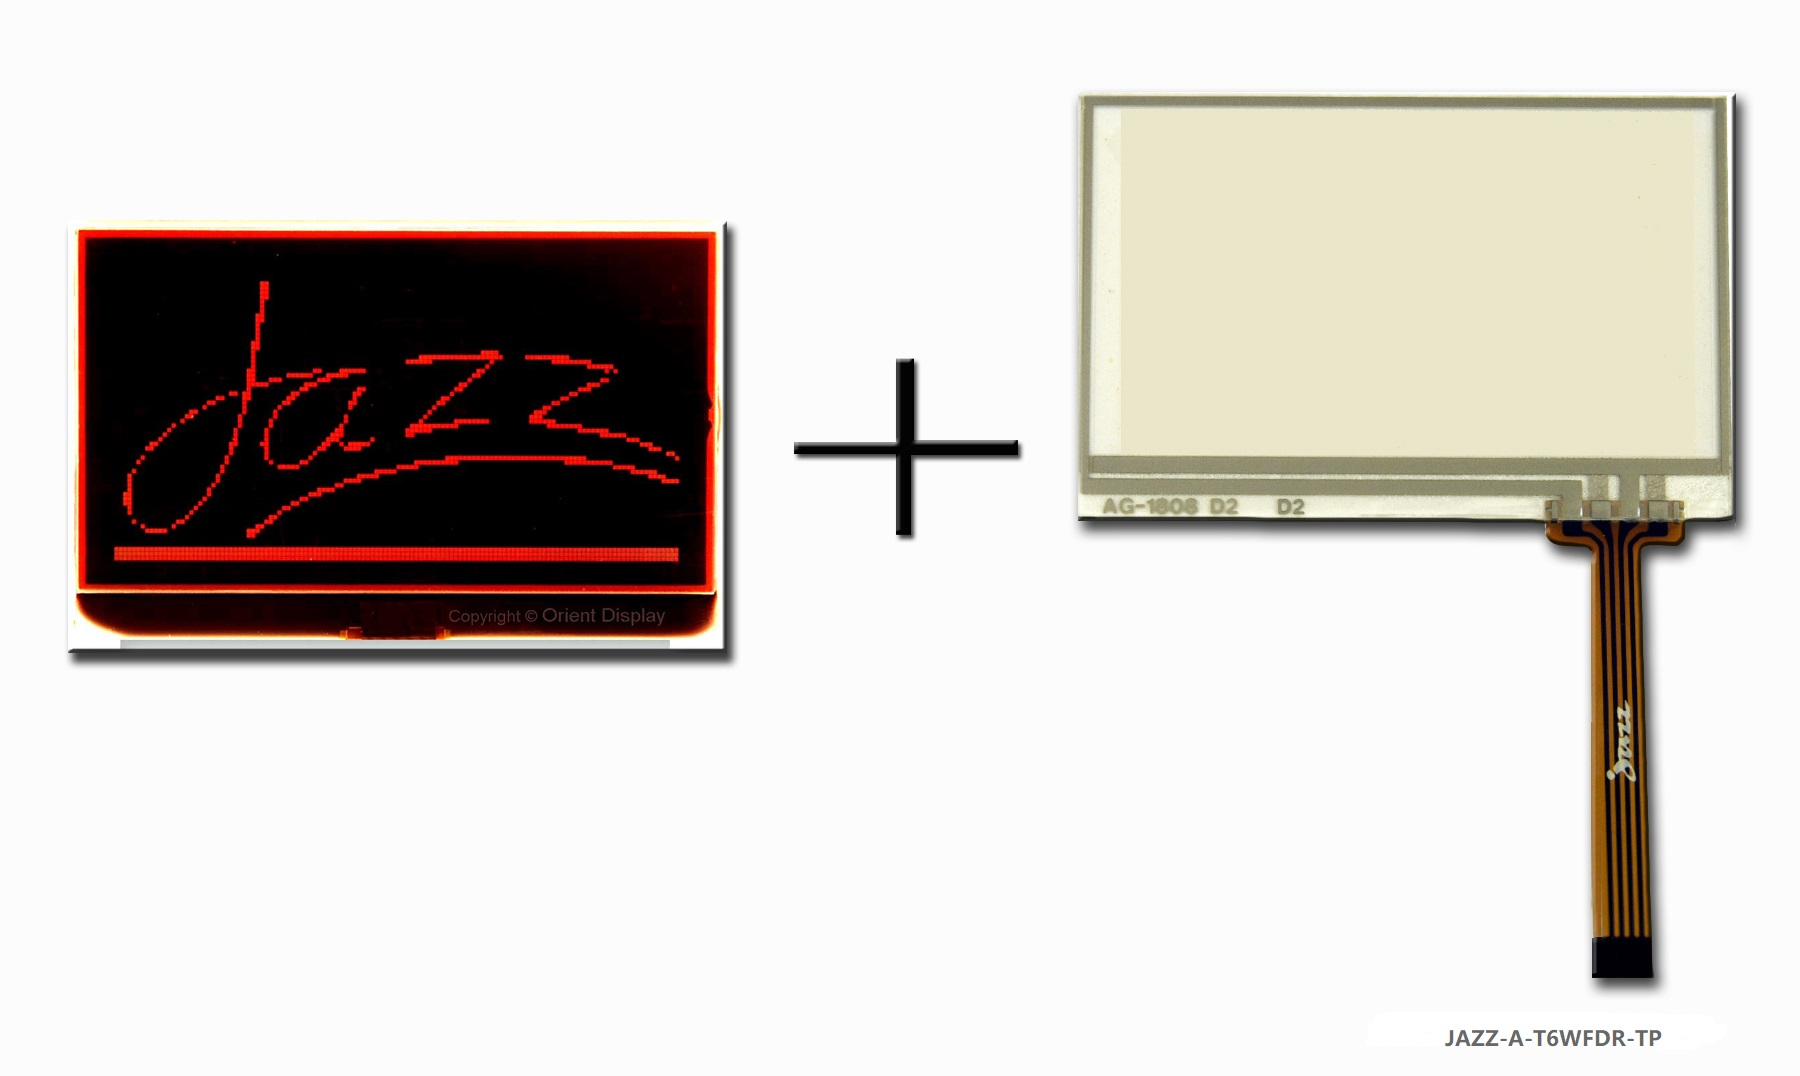 JAZZ A-T6WFDR-TP (LCD+BL+RTP Graphic COG 128x64)